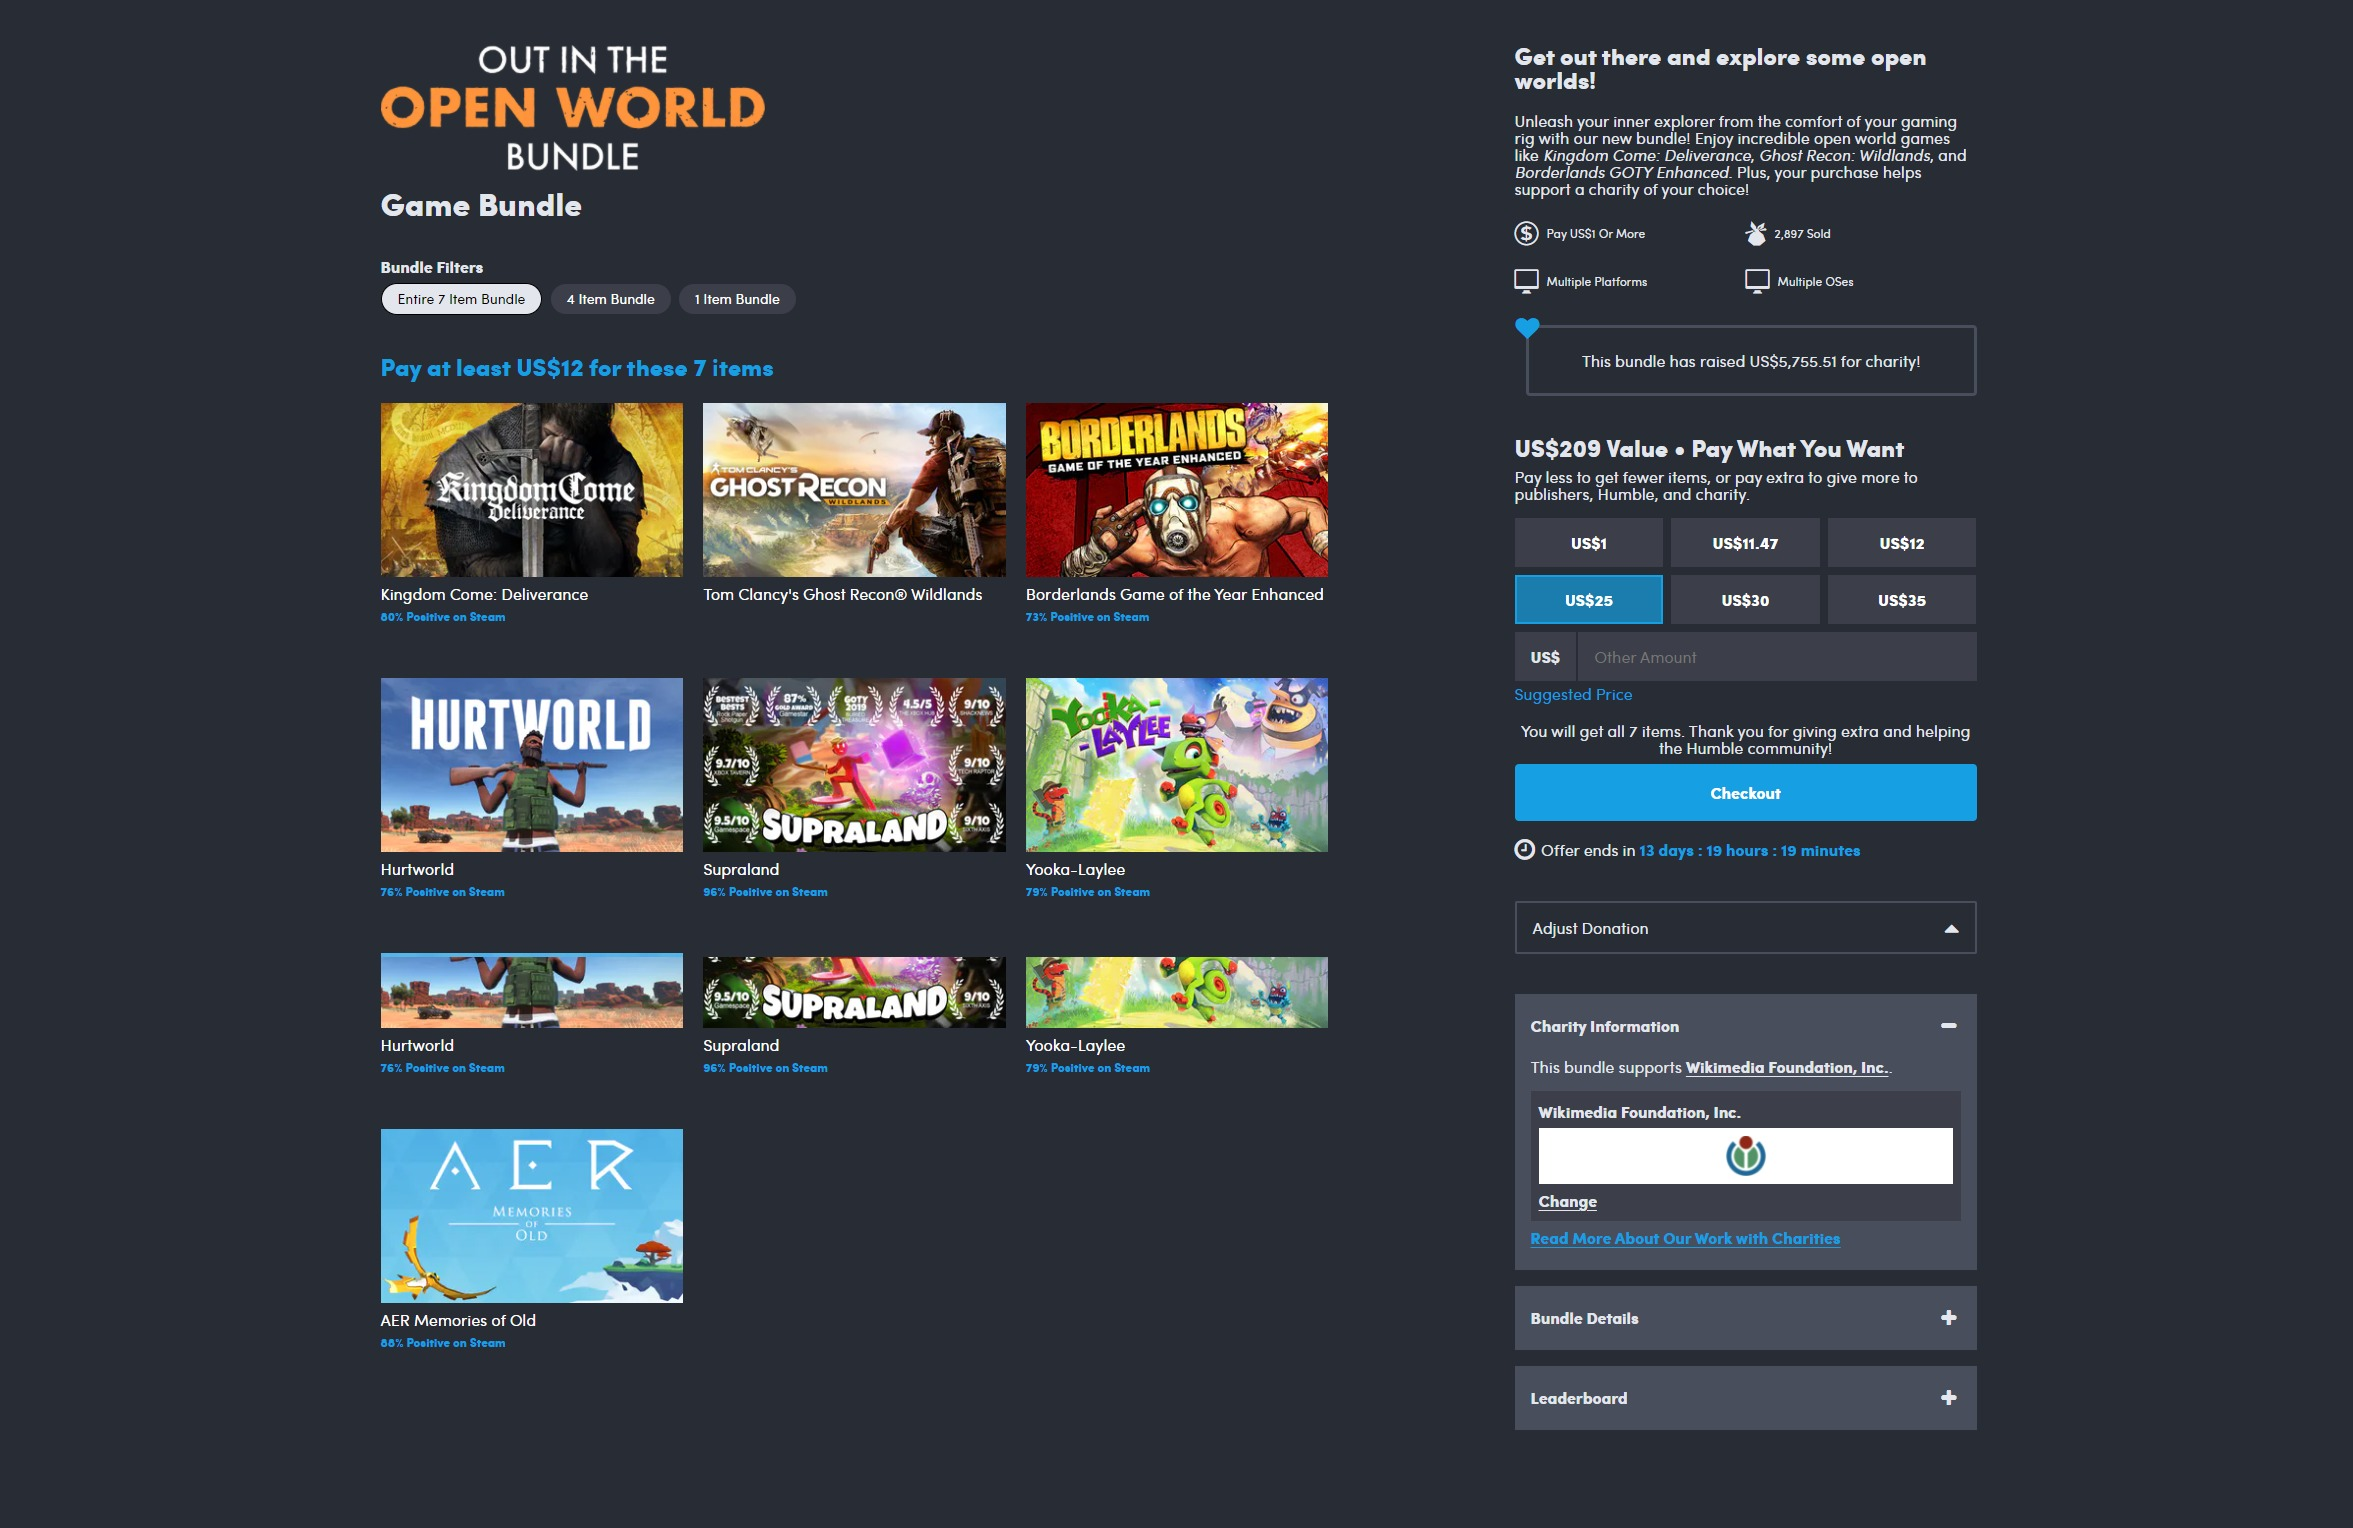 FireShot Capture 742 - Humble Out in the Open World Bundle (pay what you want and help chari_ - www.humblebundle.com.jpg